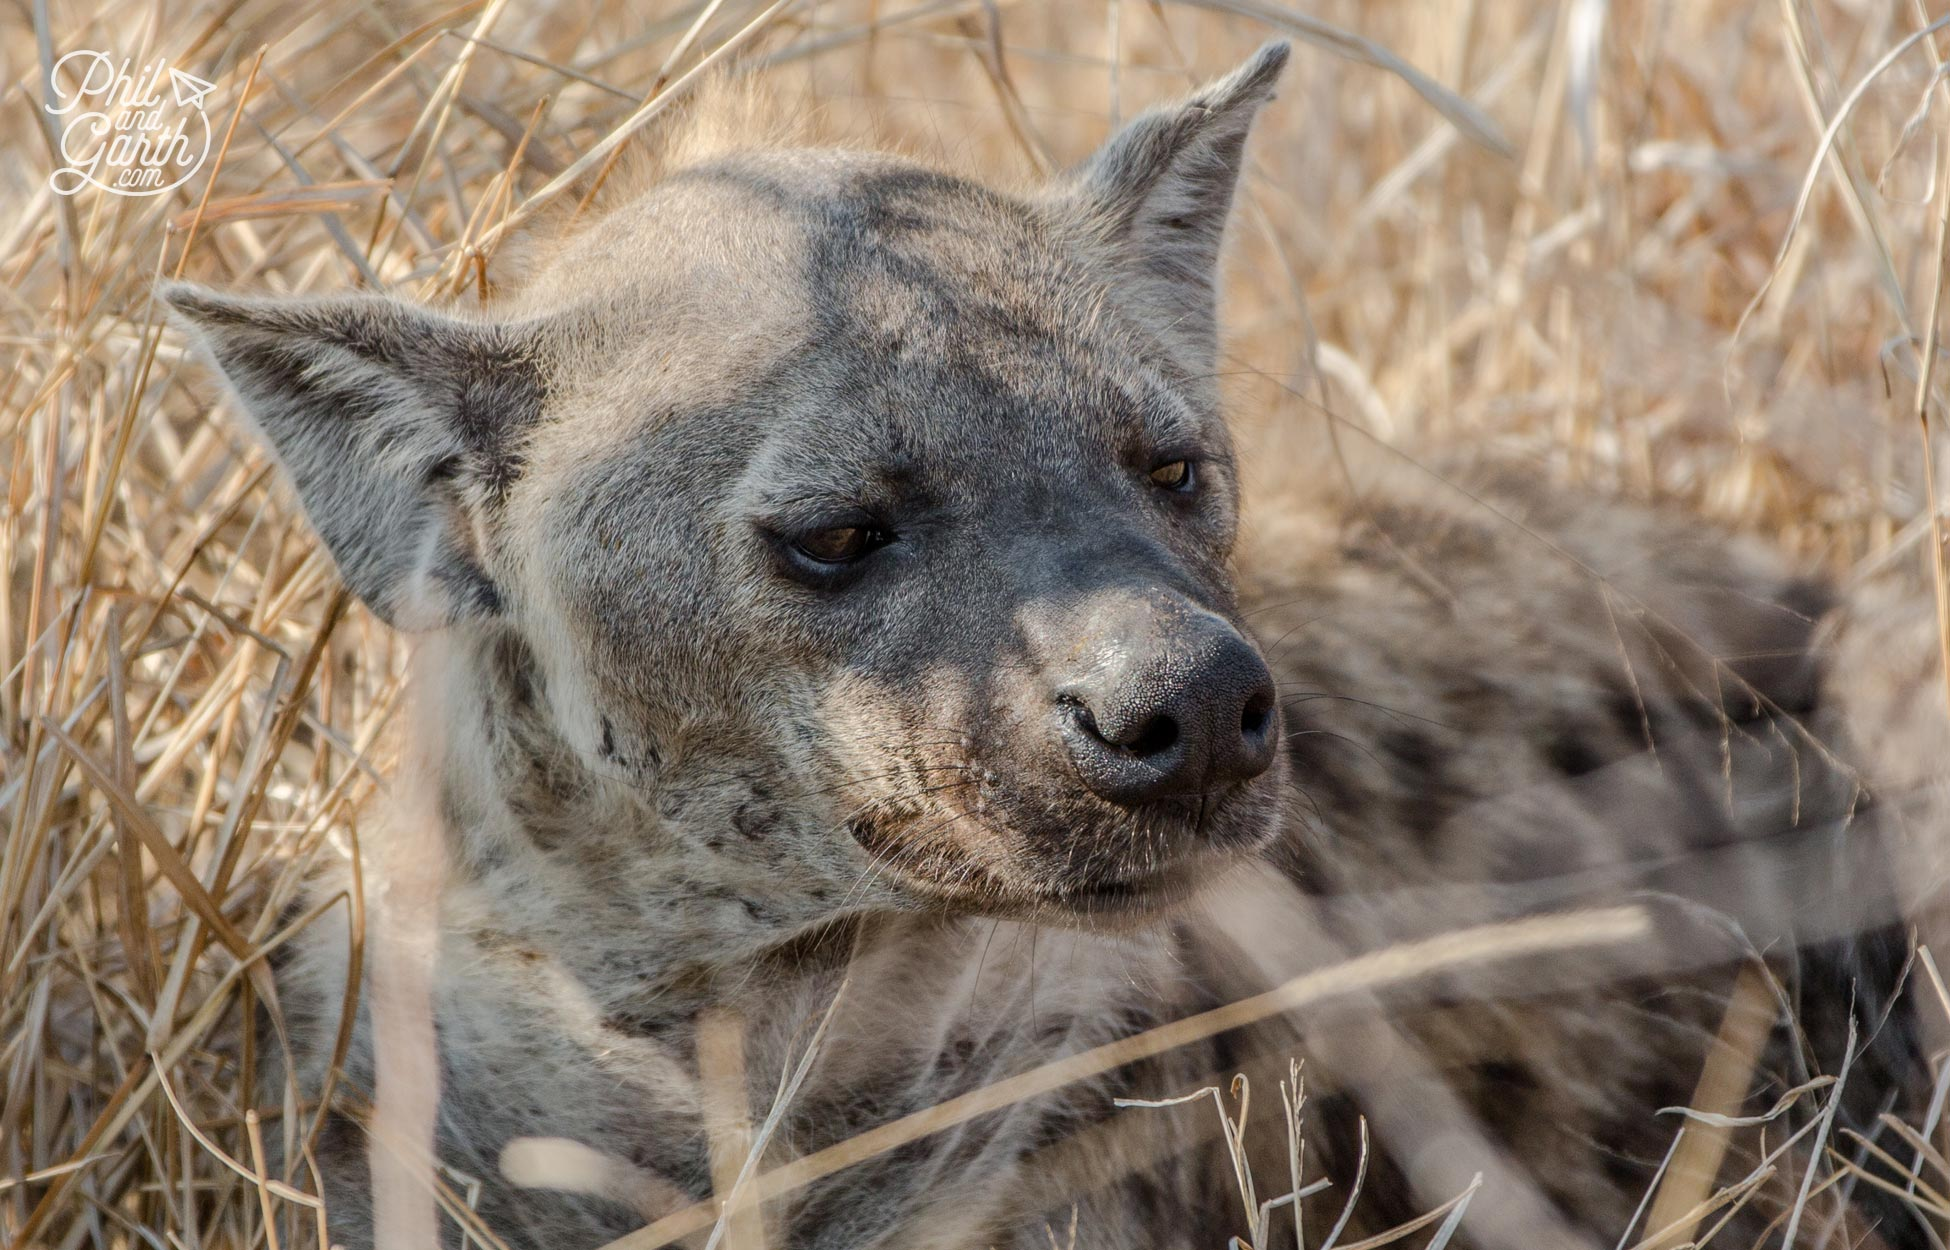 2 day Kruger National Park Safari - Our first spot - Hyena sleeping in the bush